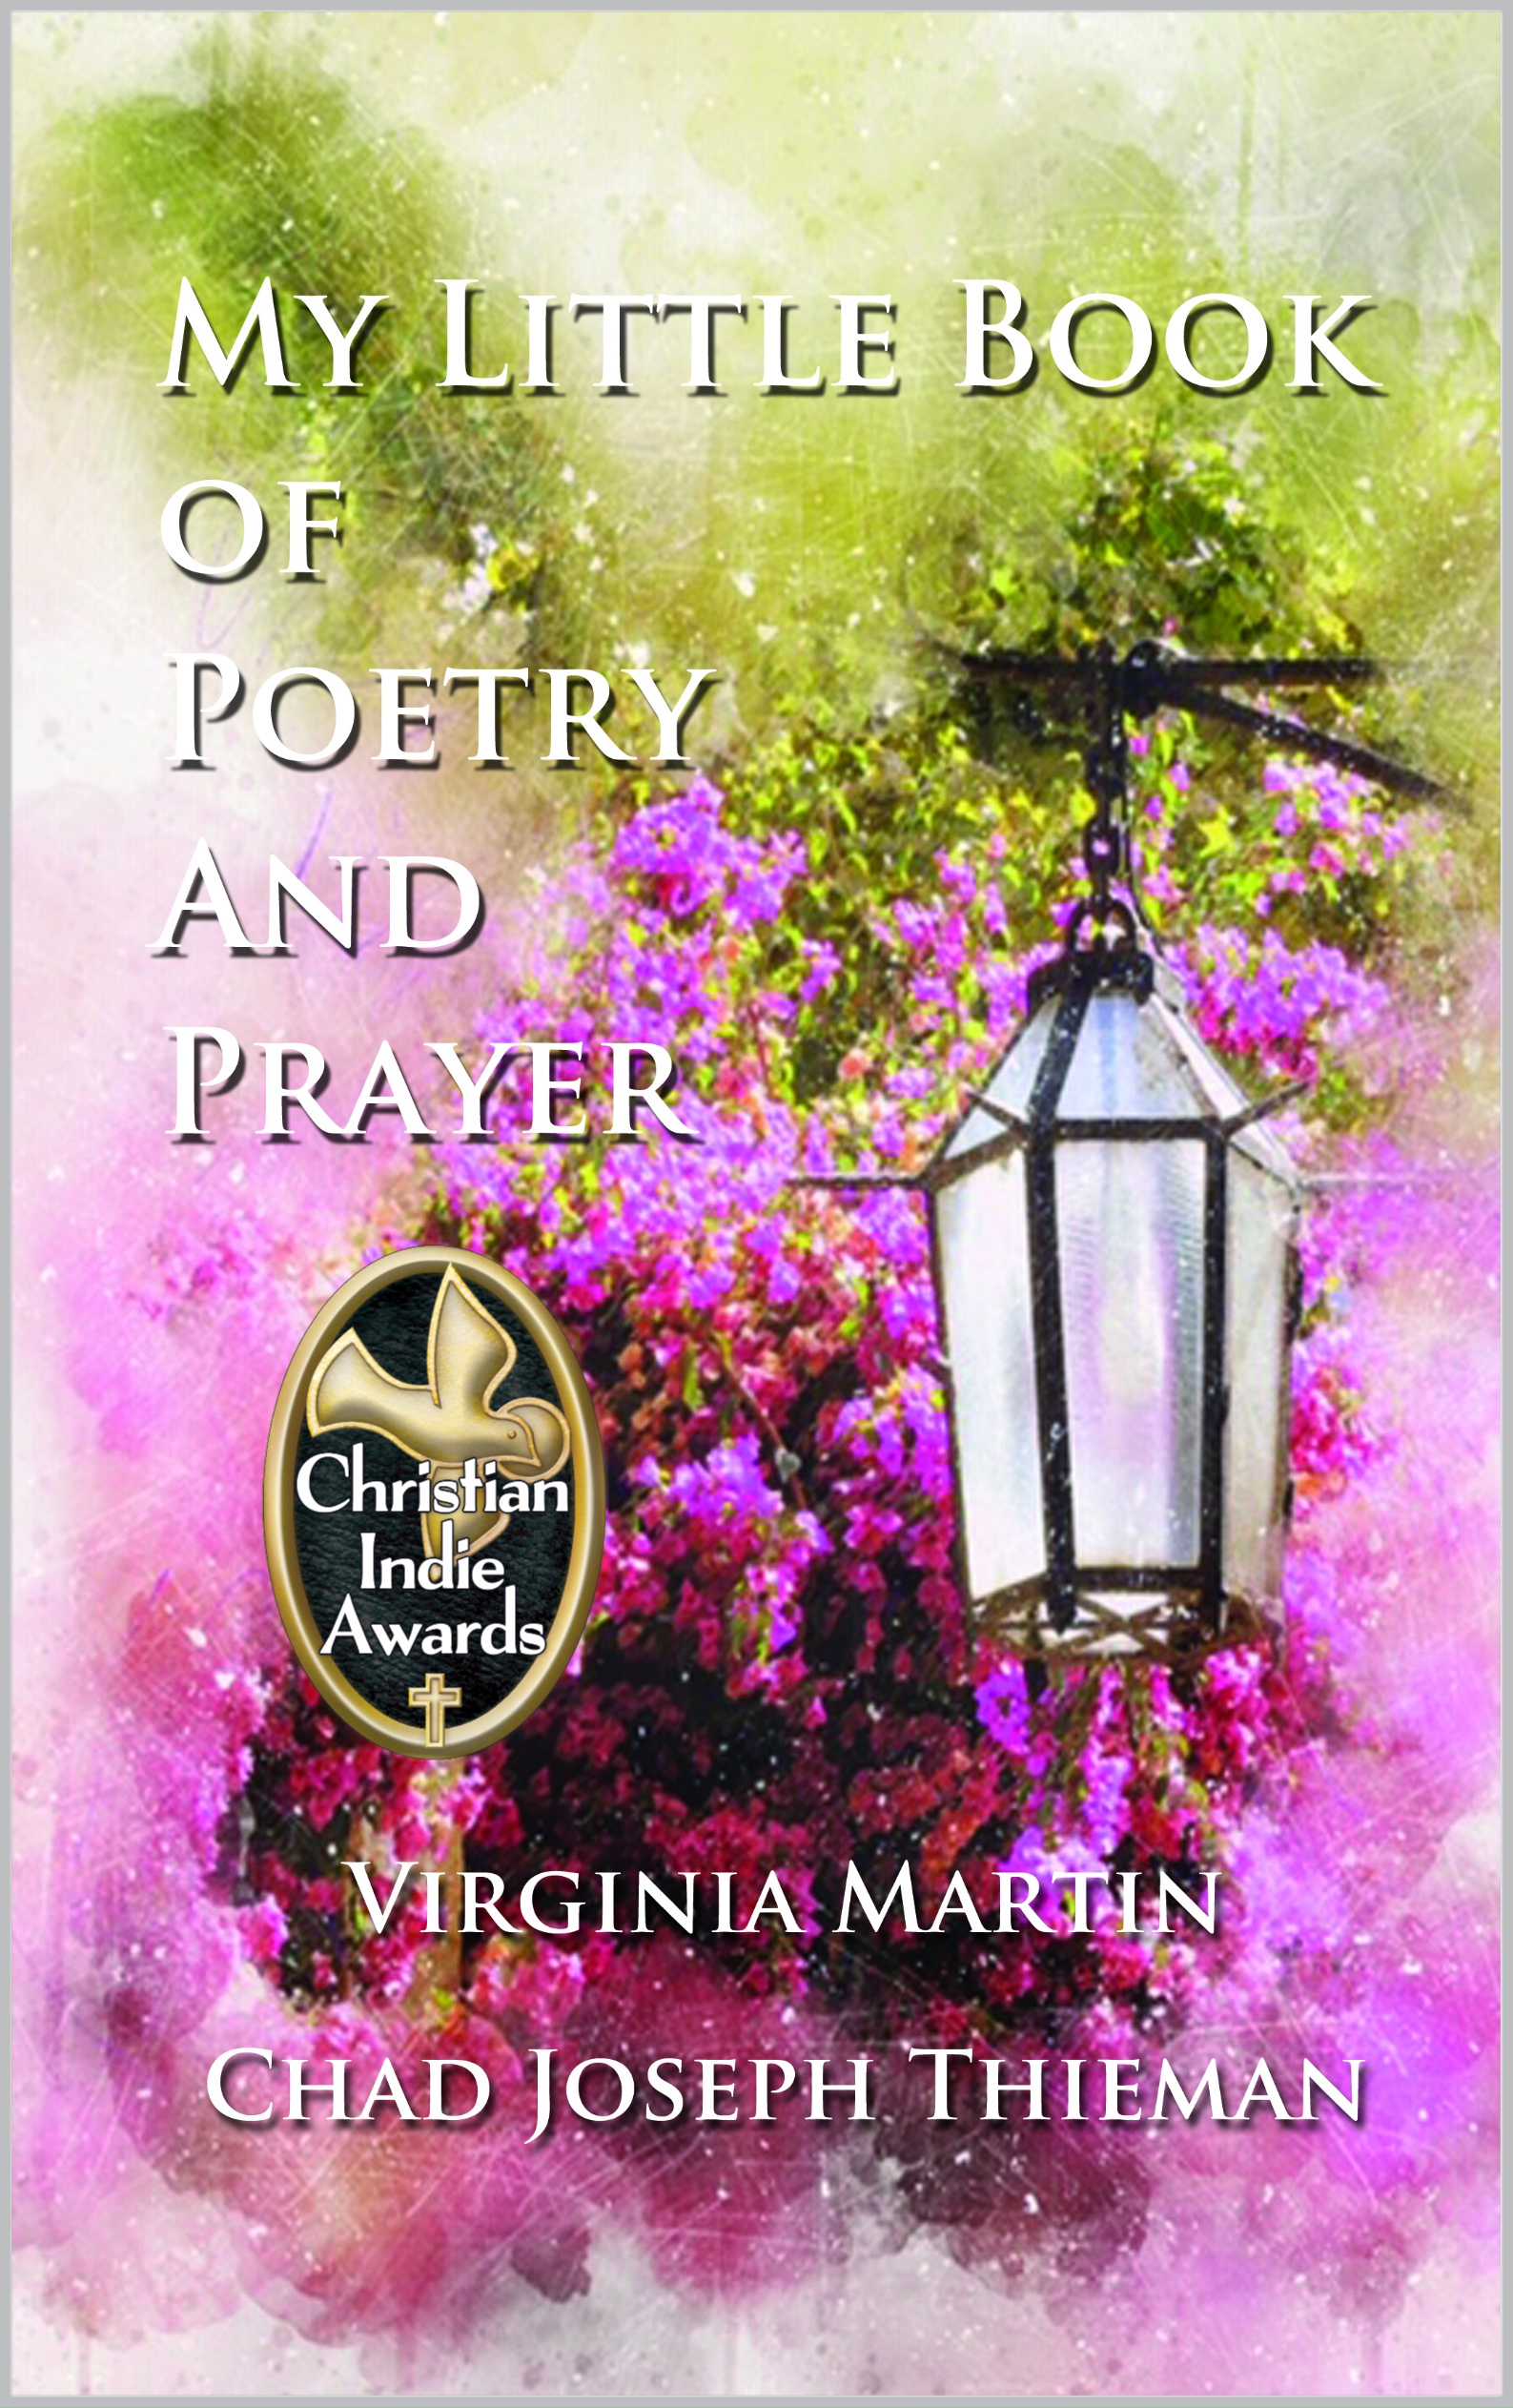 My Little Book of Poetry and Prayer